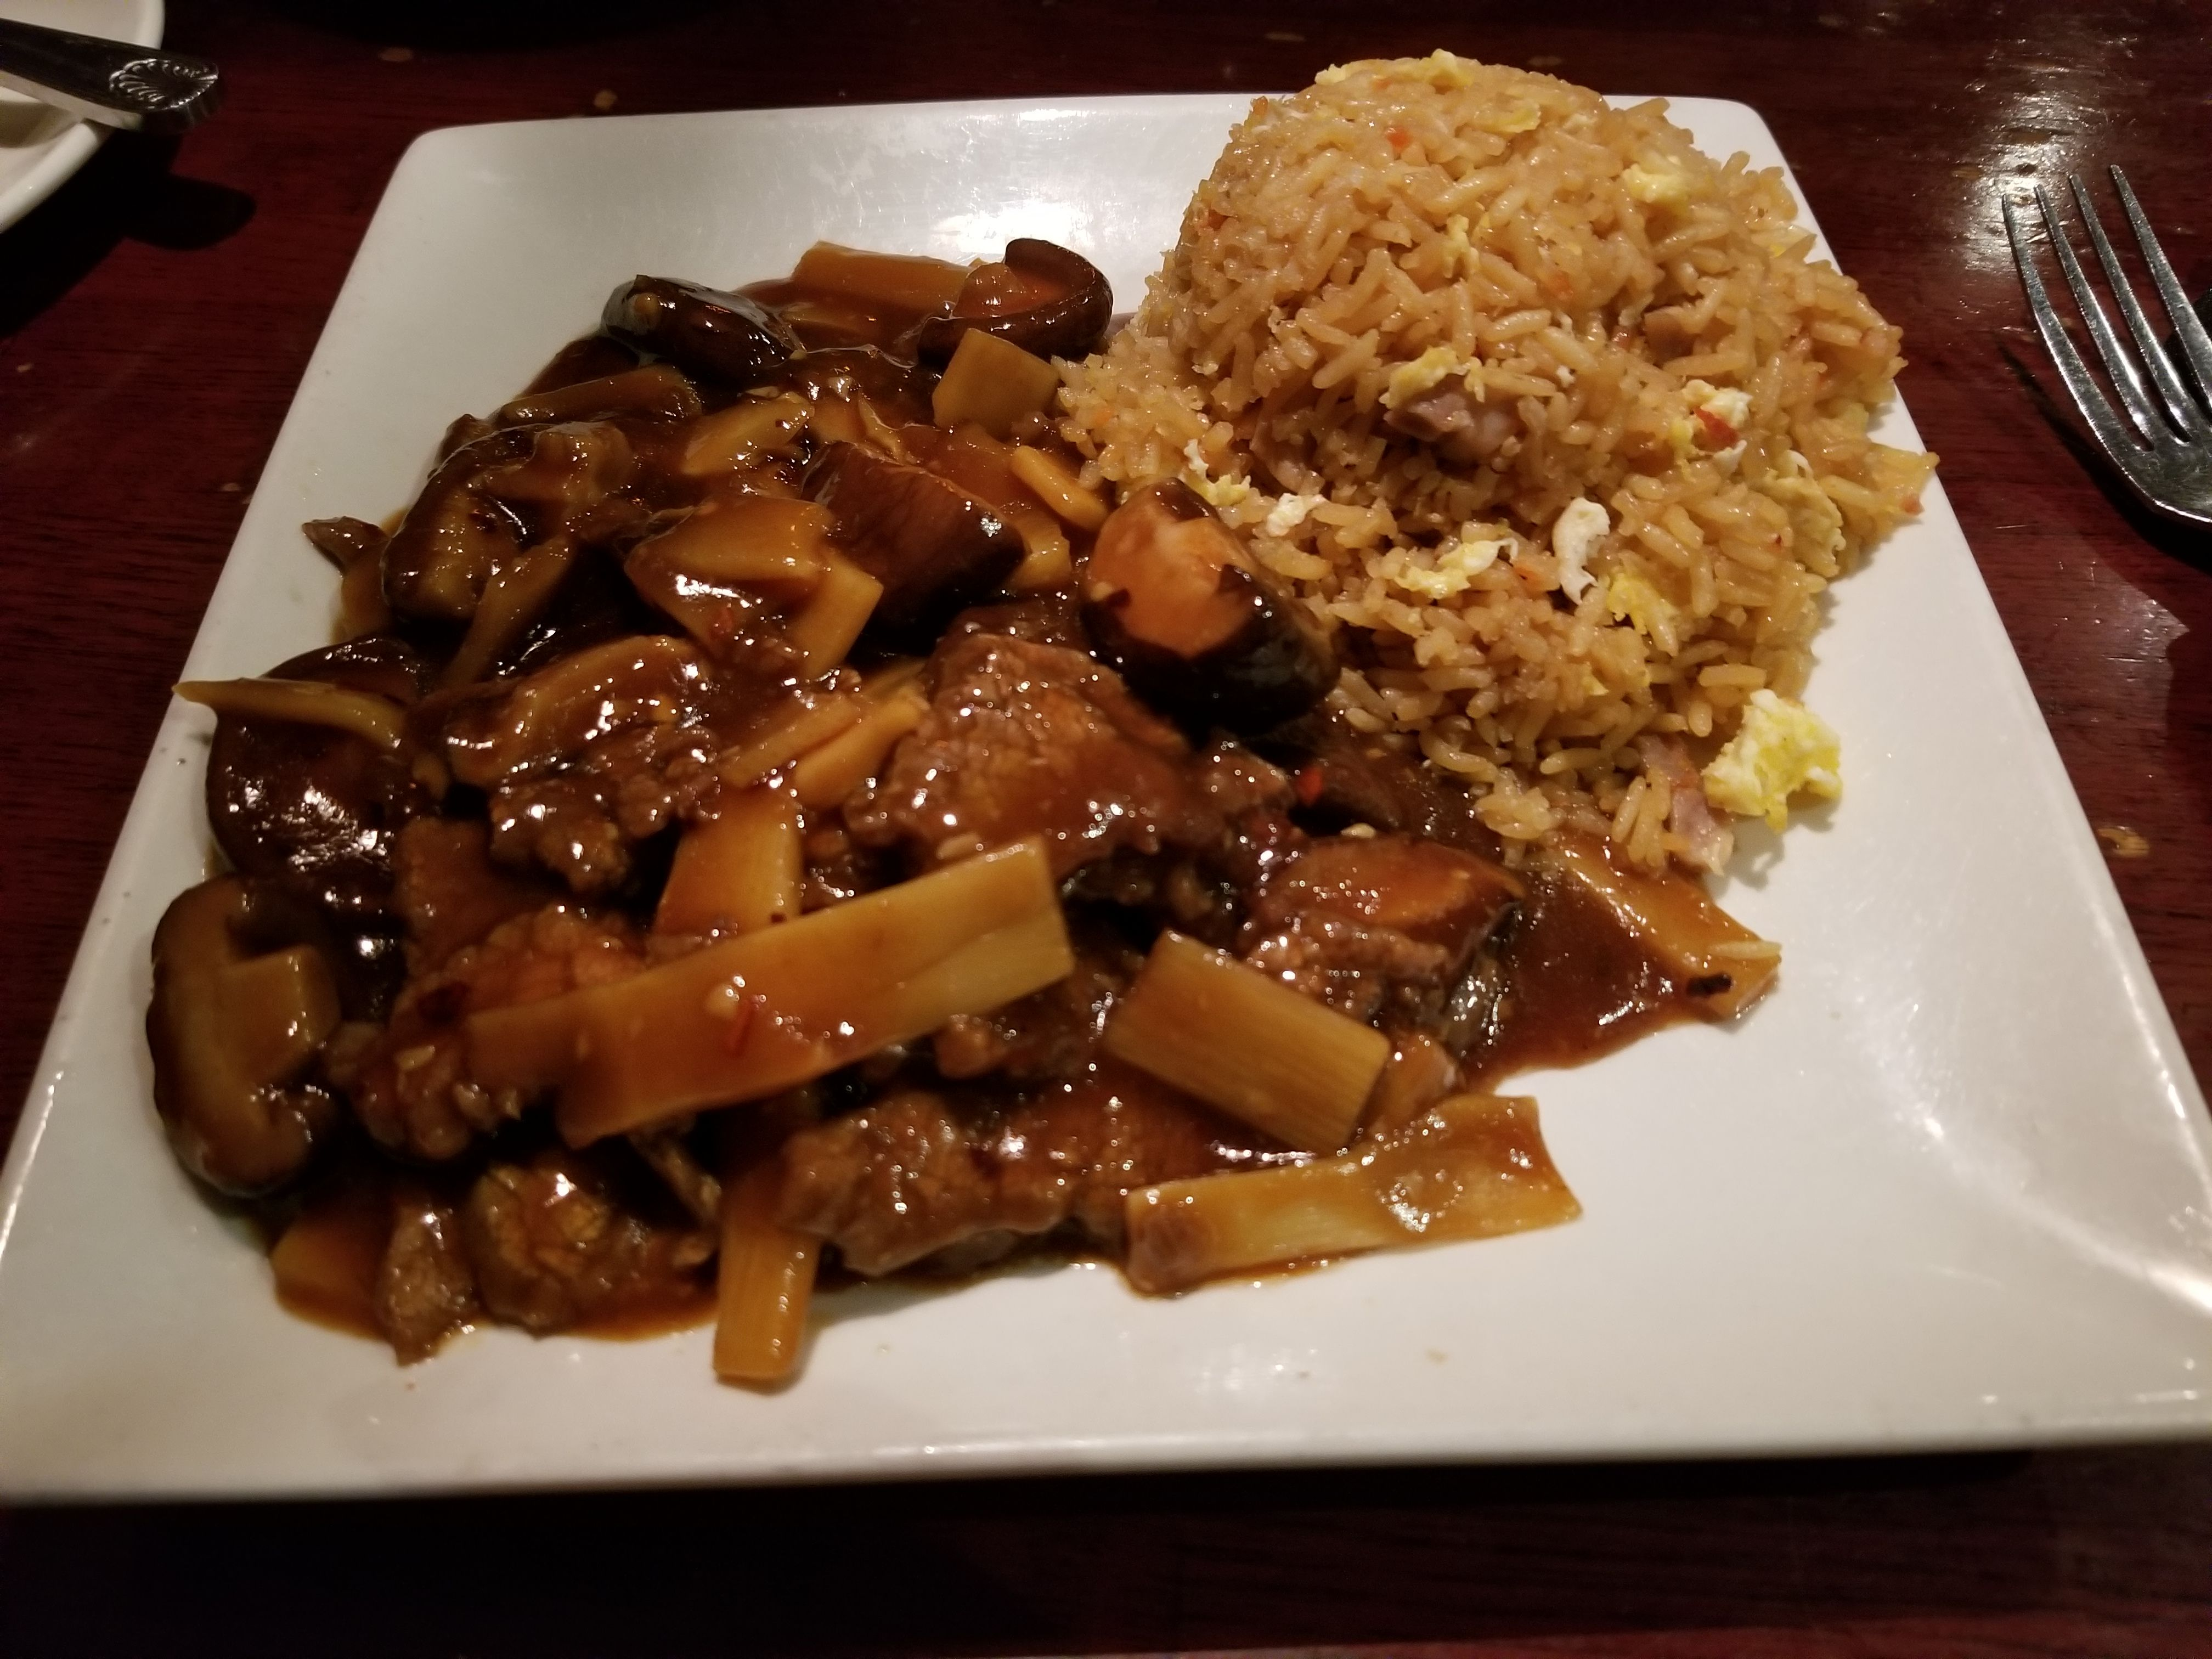 The Beef With Two Delights Dish From A Chinese Restaurant In South Daytona Florida Features Chopped Steak With Bamboo Shoo Chopped Steak Pork Fried Rice Food